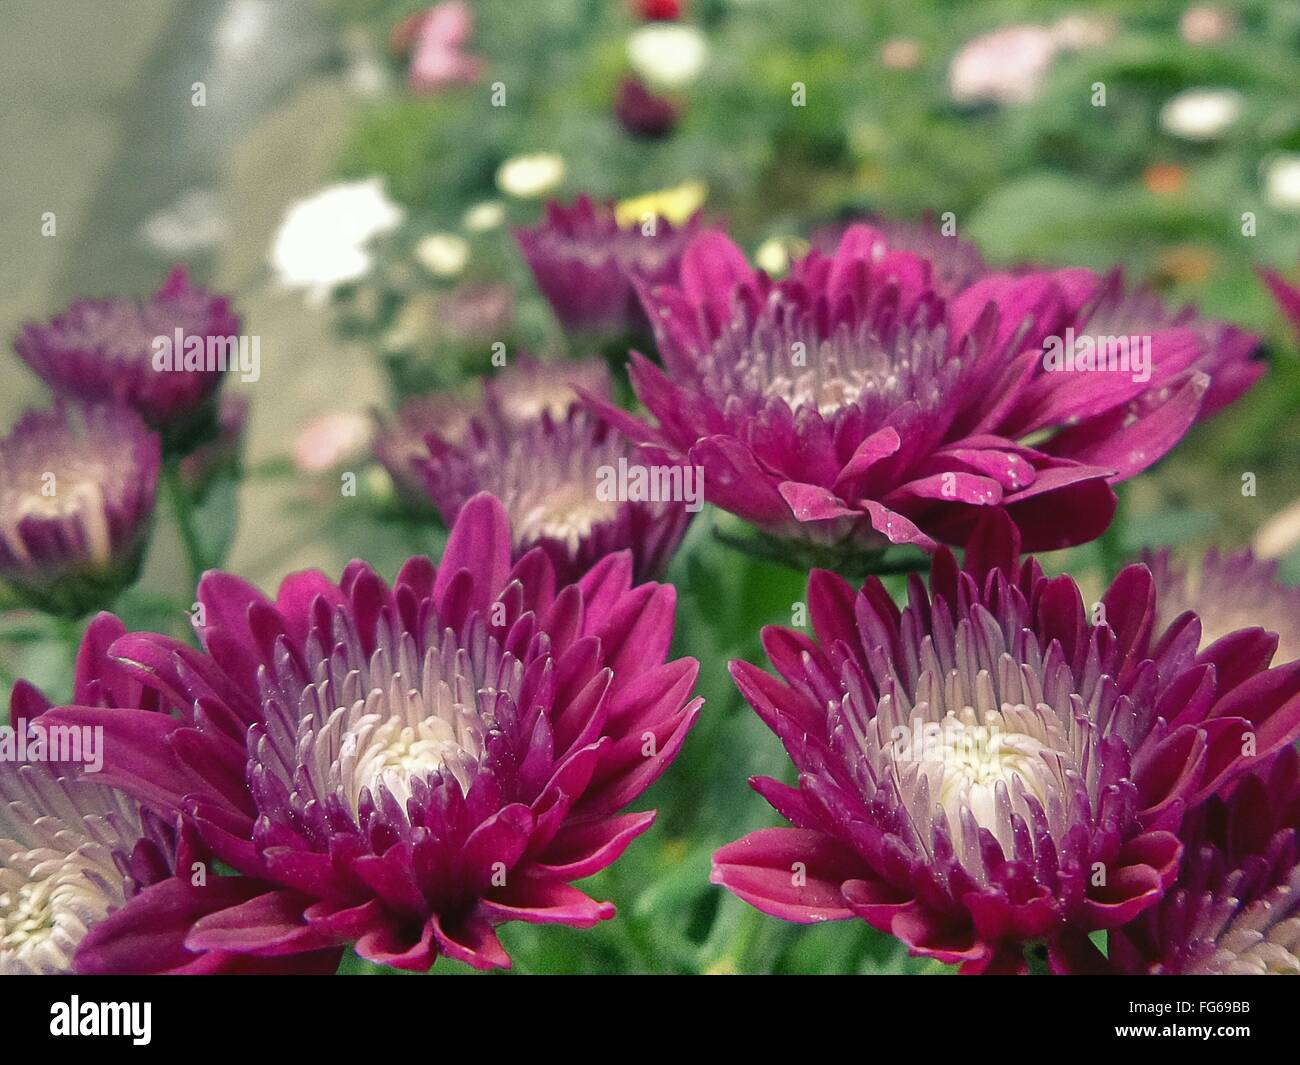 Close-Up Of Fresh Magenta Dahlia Flowers Blooming In Garden - Stock Image